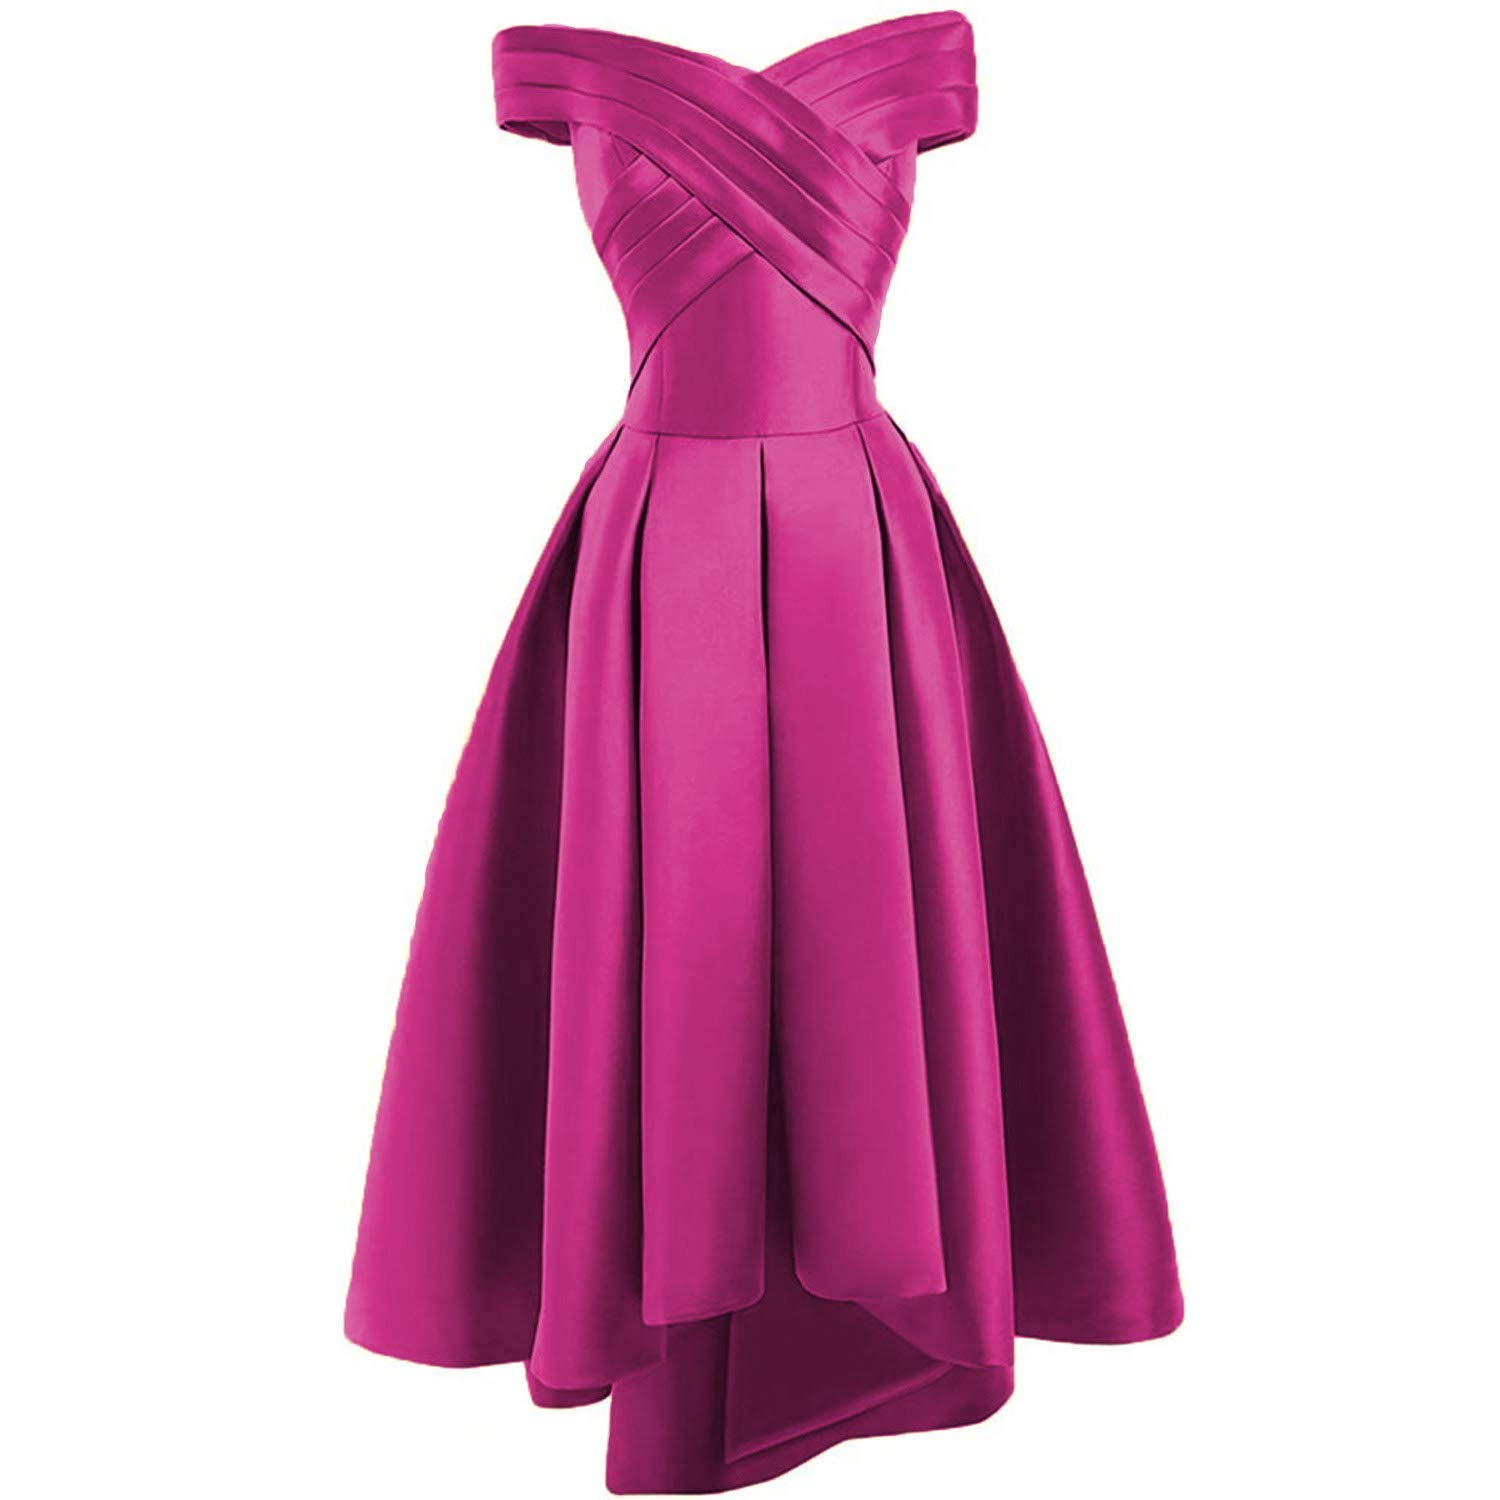 Fuchsia Dreagel Women's High Low Prom Dresses Off Shoulder Pleatd Evening Homecoming Dress